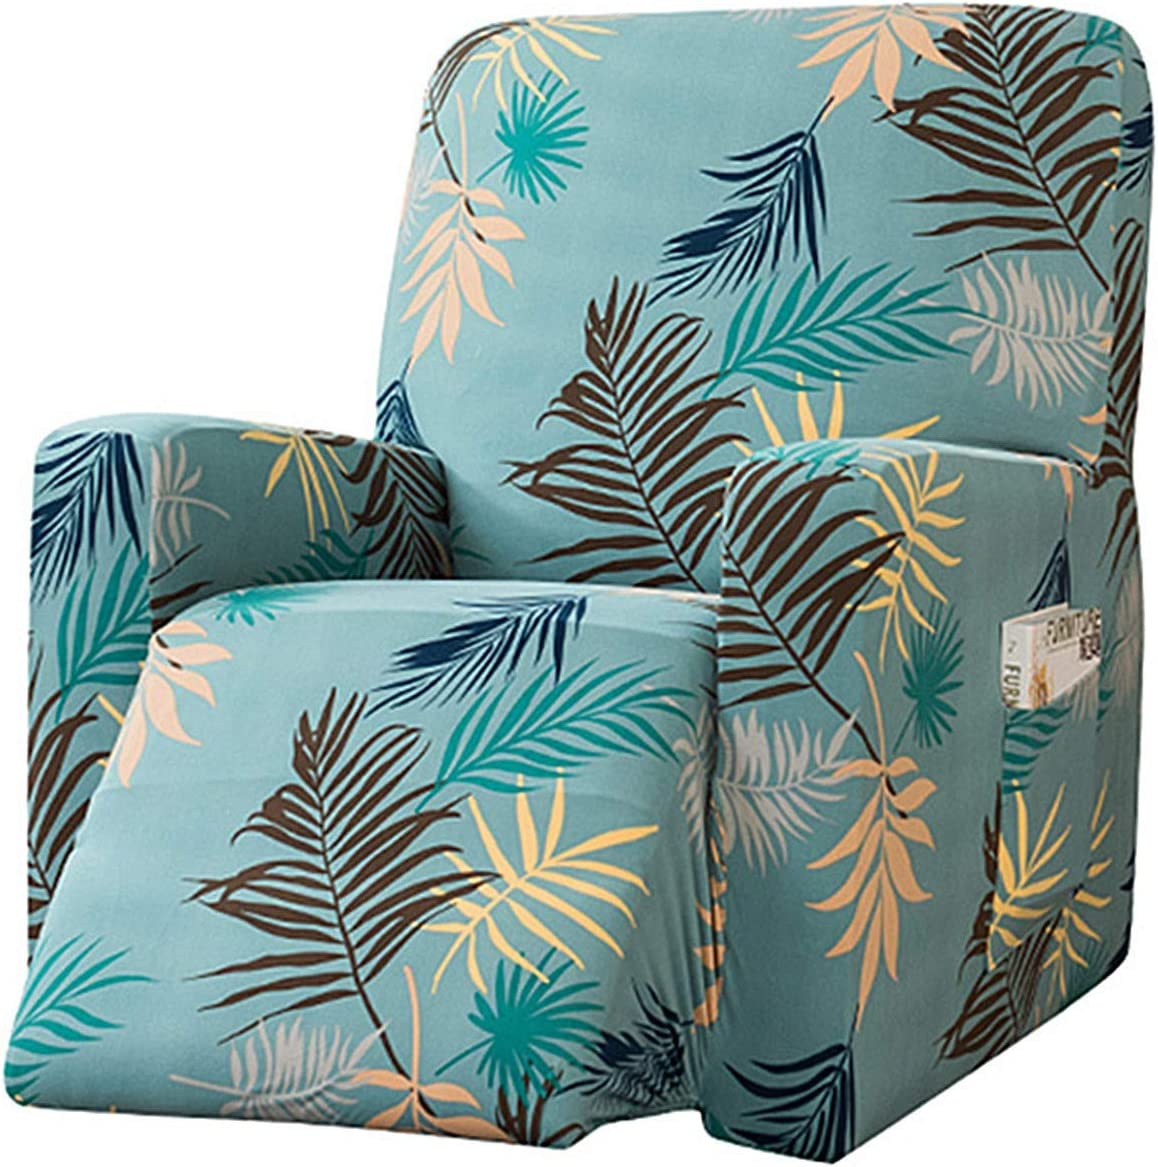 YUENA CARE Stretch Recliner Slipcovers Printed Chair Covers for Recliner Lazy Boy Furniture Protector with Side Pockets #1 One Size